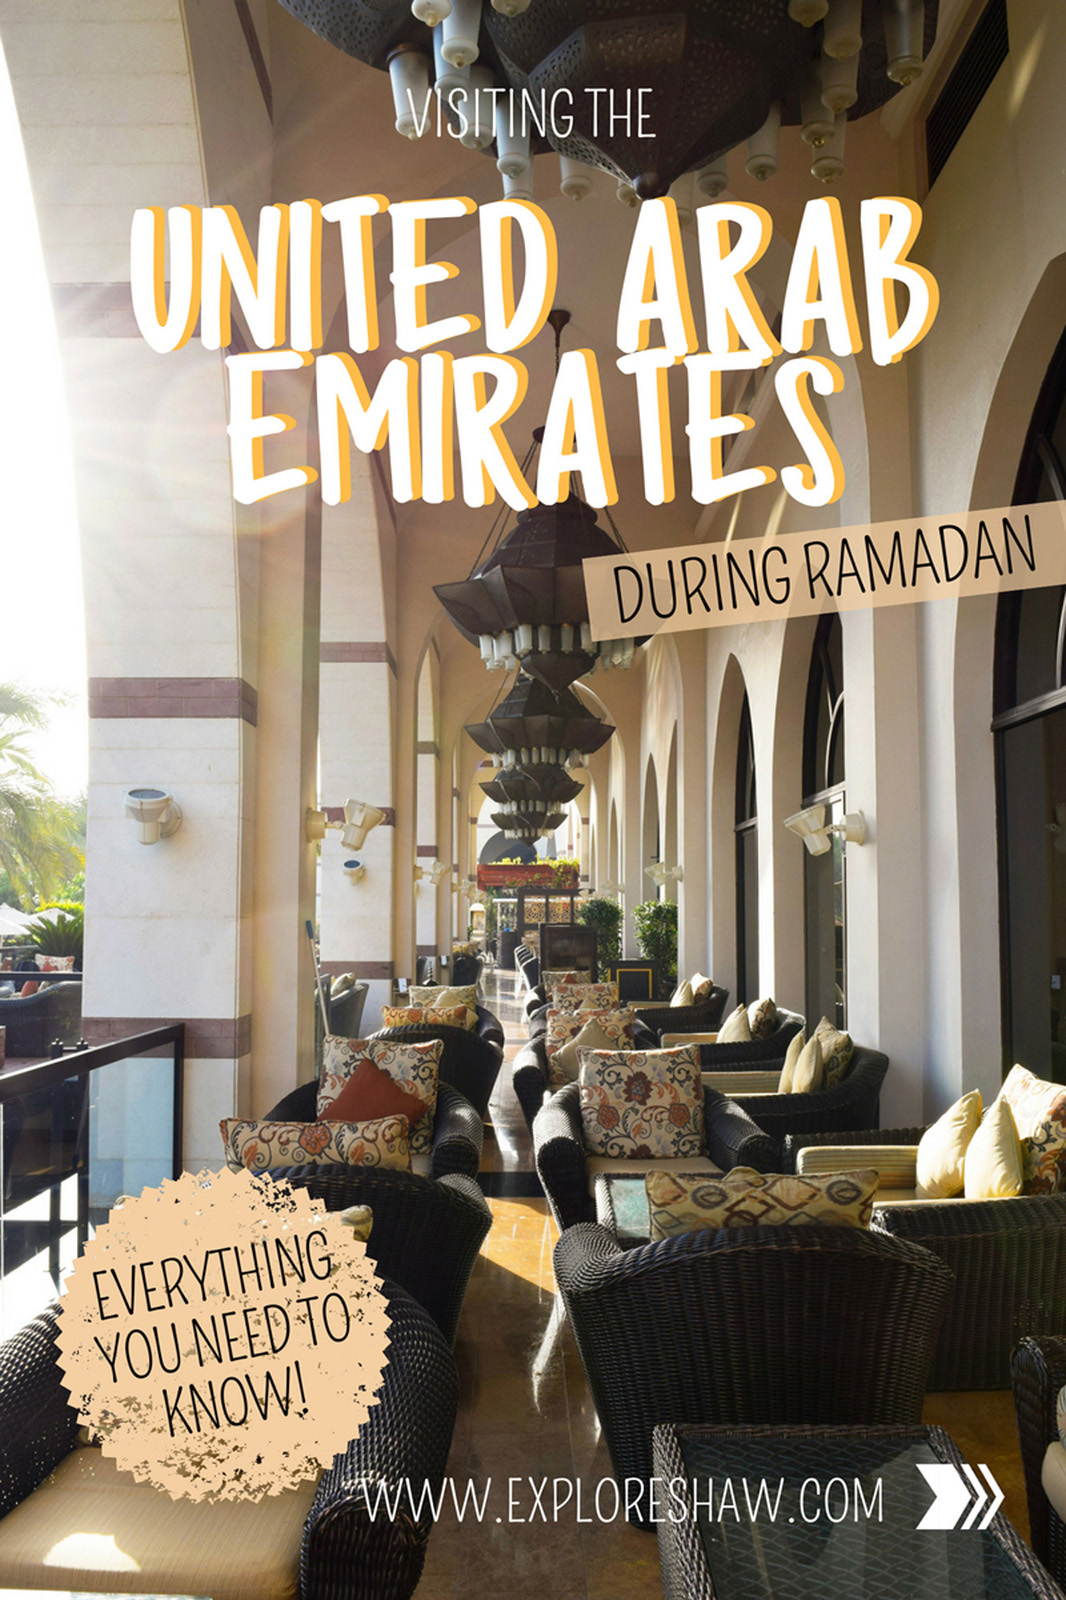 Everything you need to know to visit the United Arab Emirates during Ramadan, while always being culturally sensitive to their holy period. #Dubai #UnitedArabEmirates